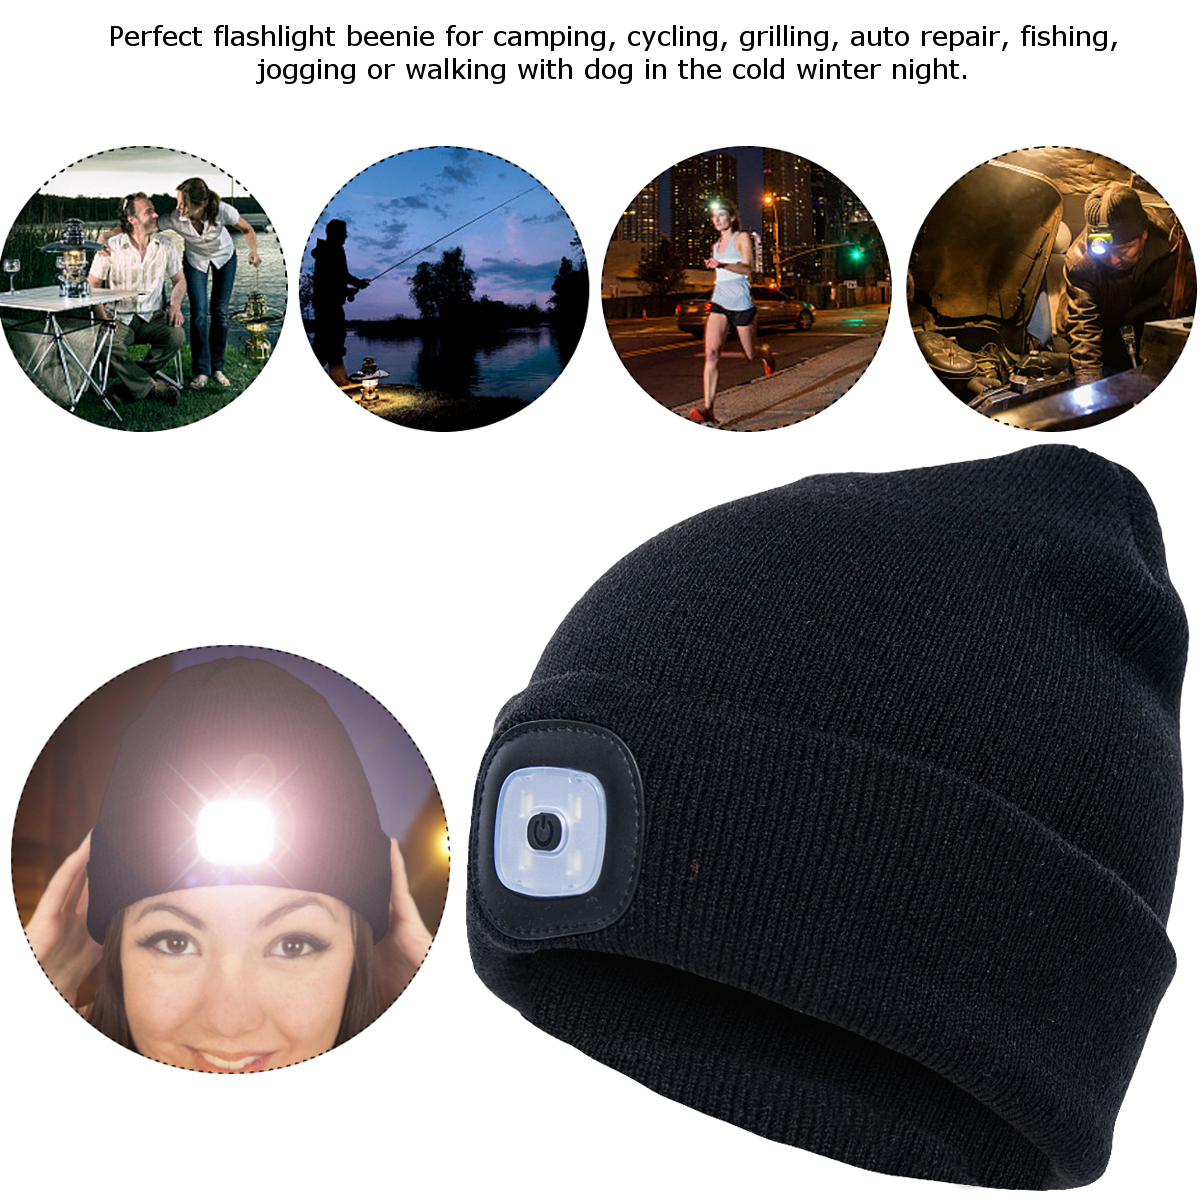 4LED 3Modes Light Cap Unisex Knit Beanie Hat Headlight For Outdoor Sports Camping Fishing